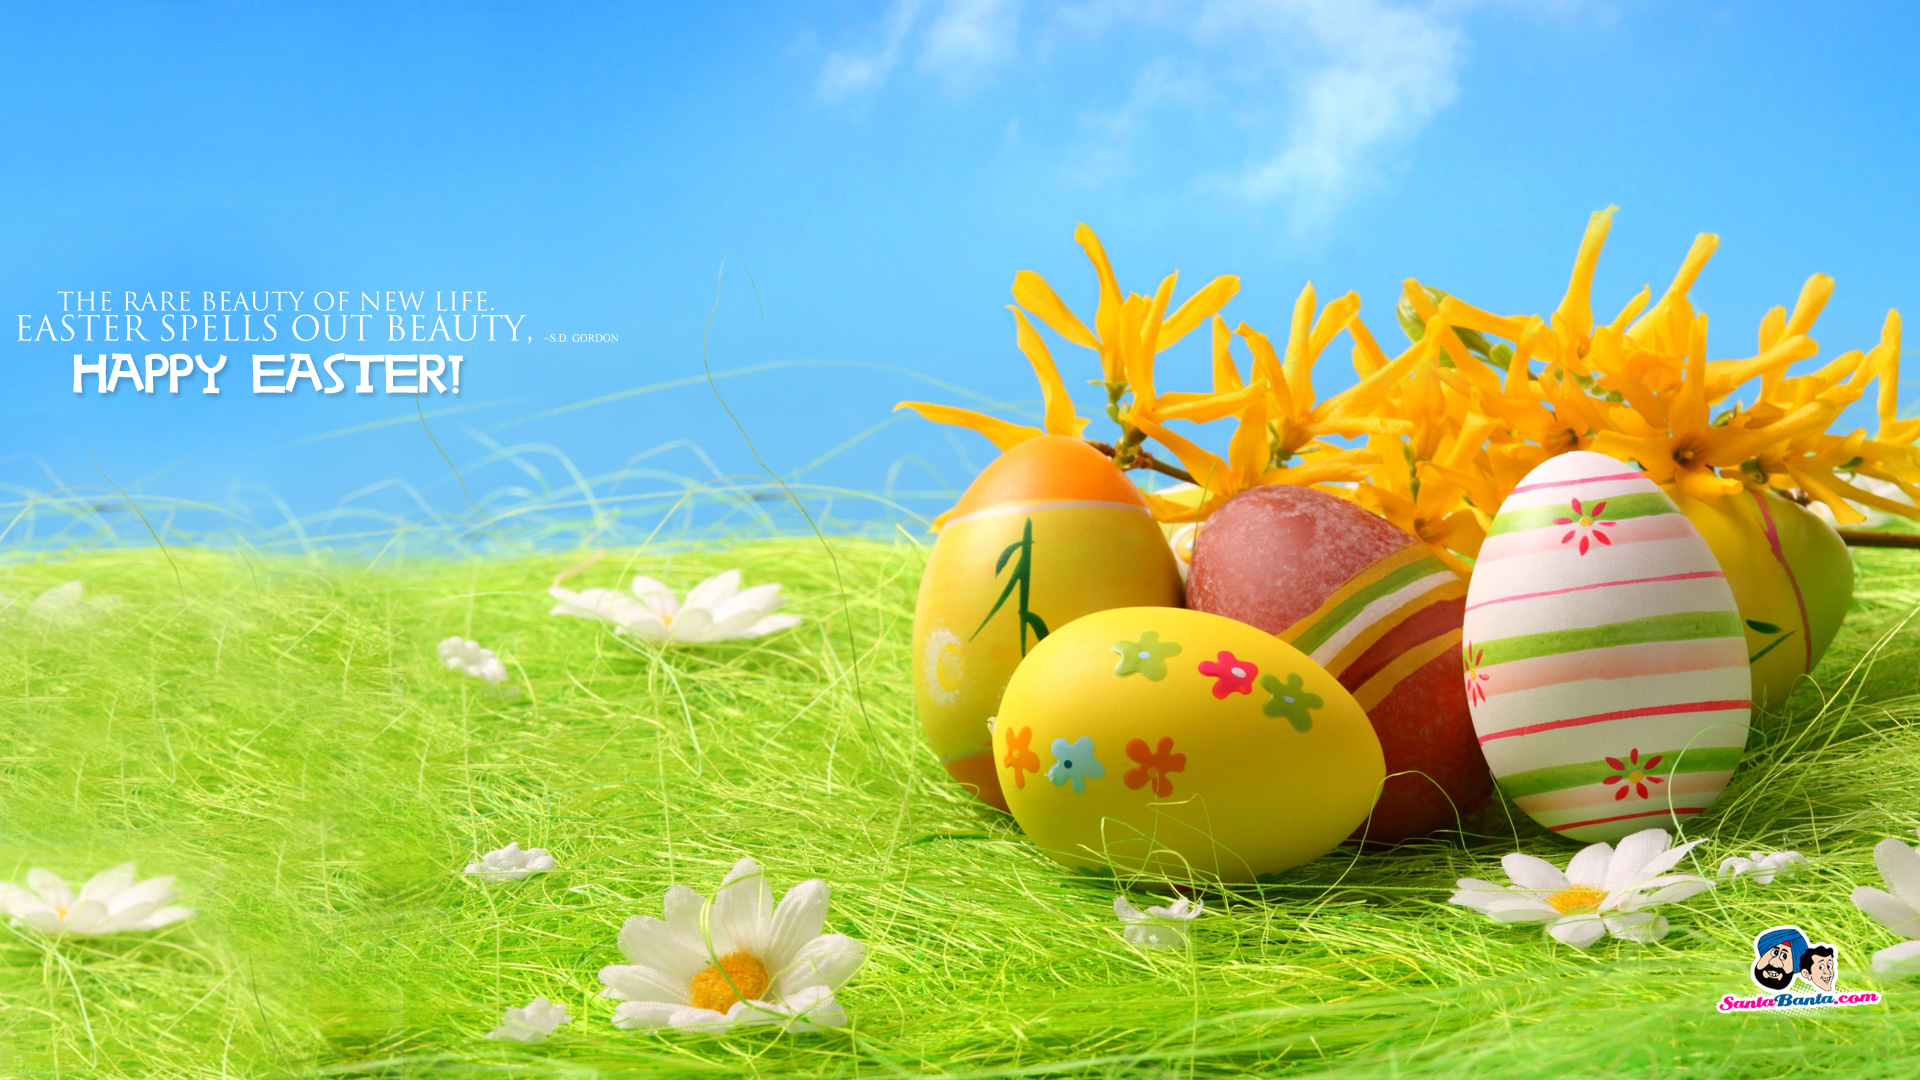 easter wallpapers hd - photo #15